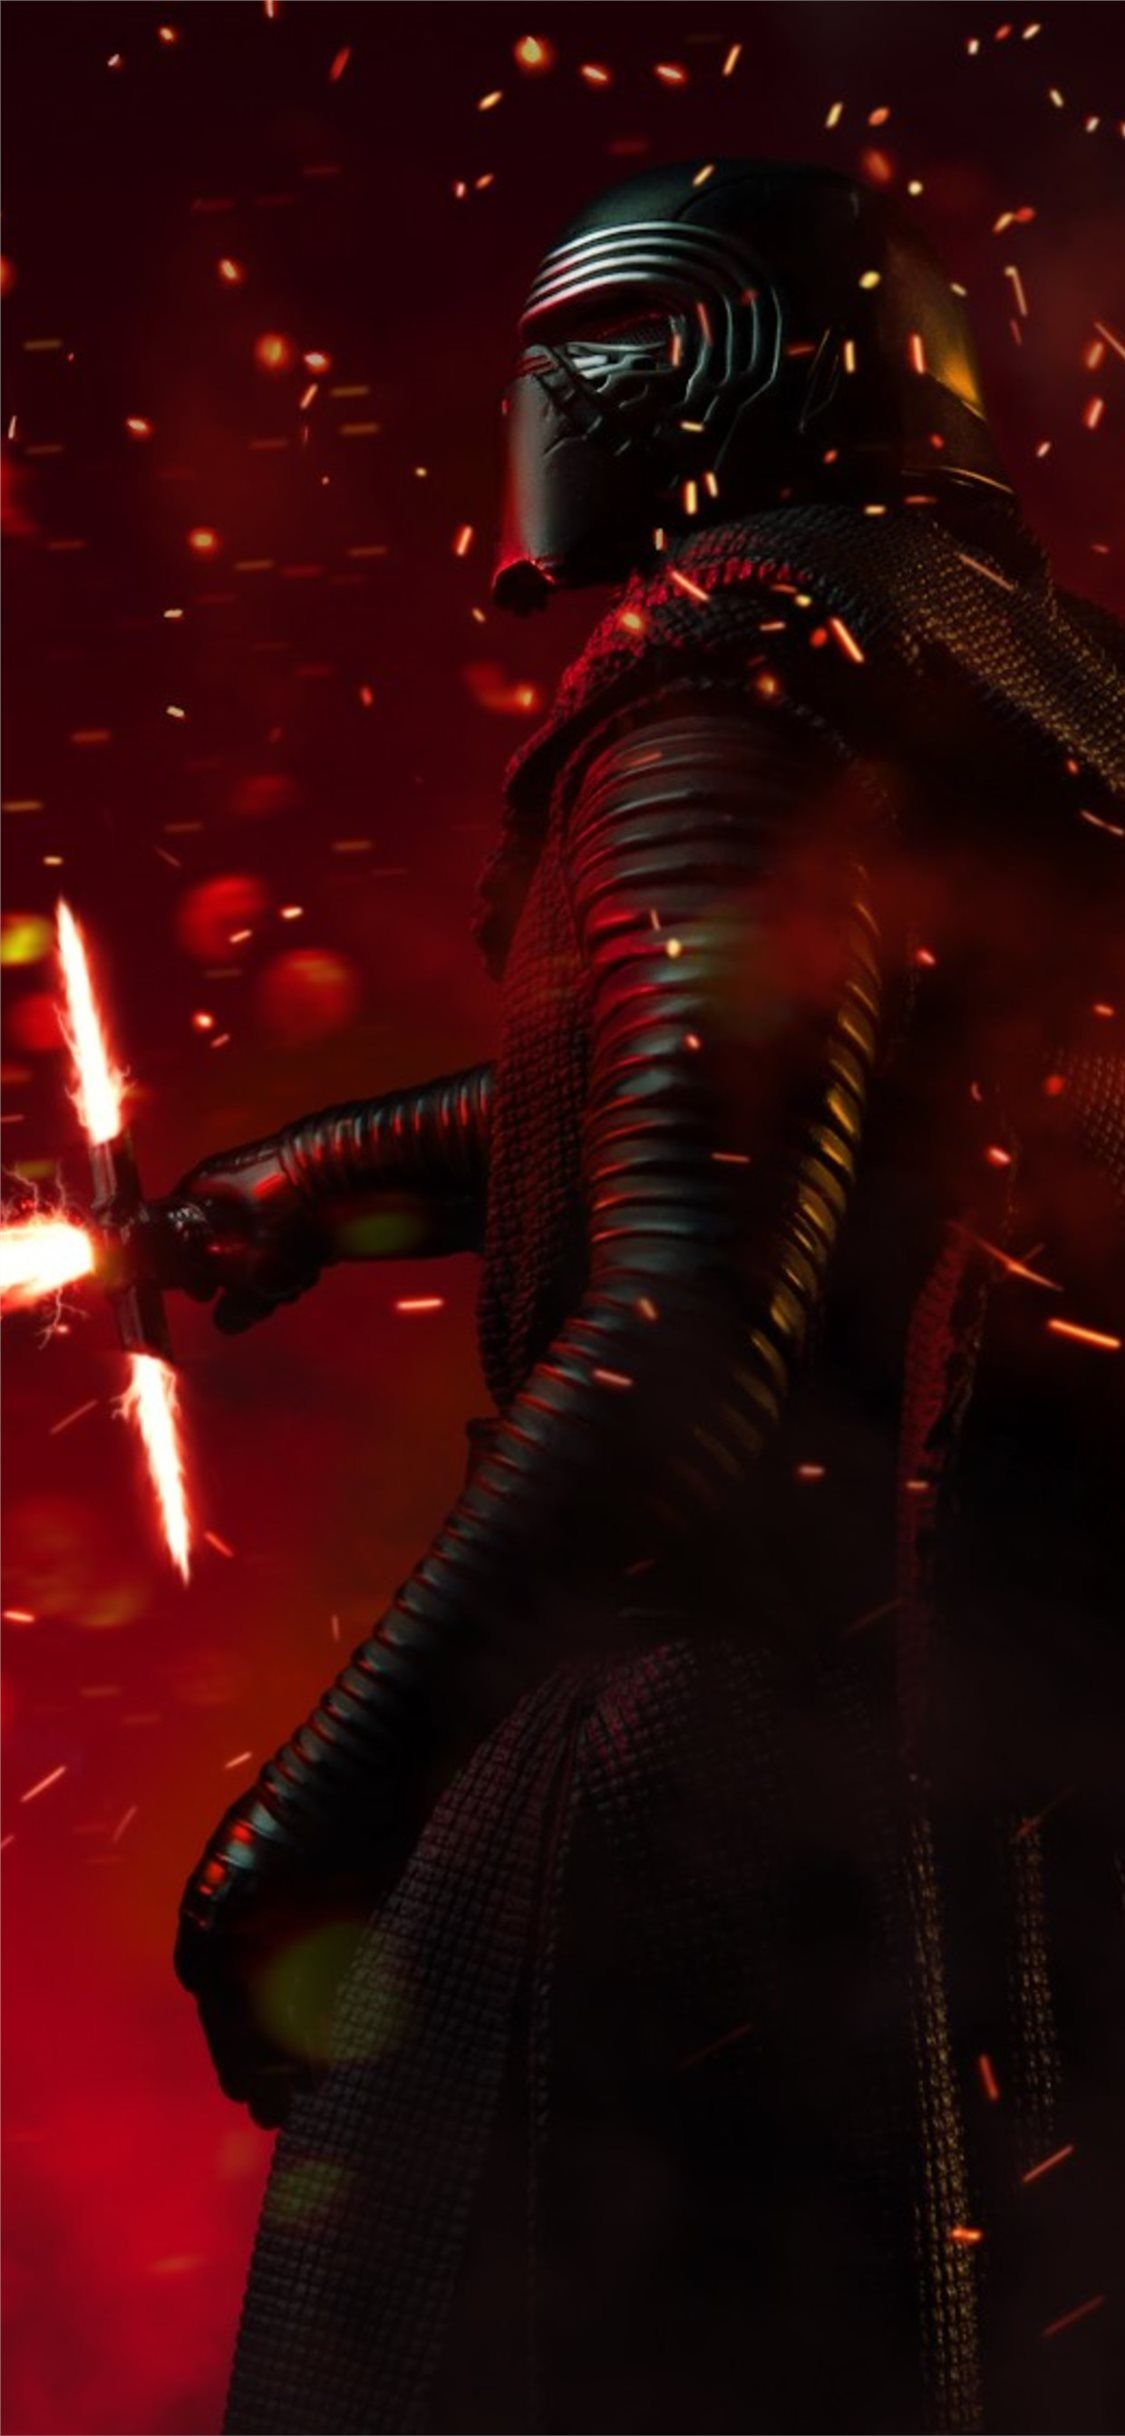 Pin By Jamaal Rawlings On Kylo Ren In 2020 Kylo Ren Wallpaper Star Wars Wallpaper Star Wars Background